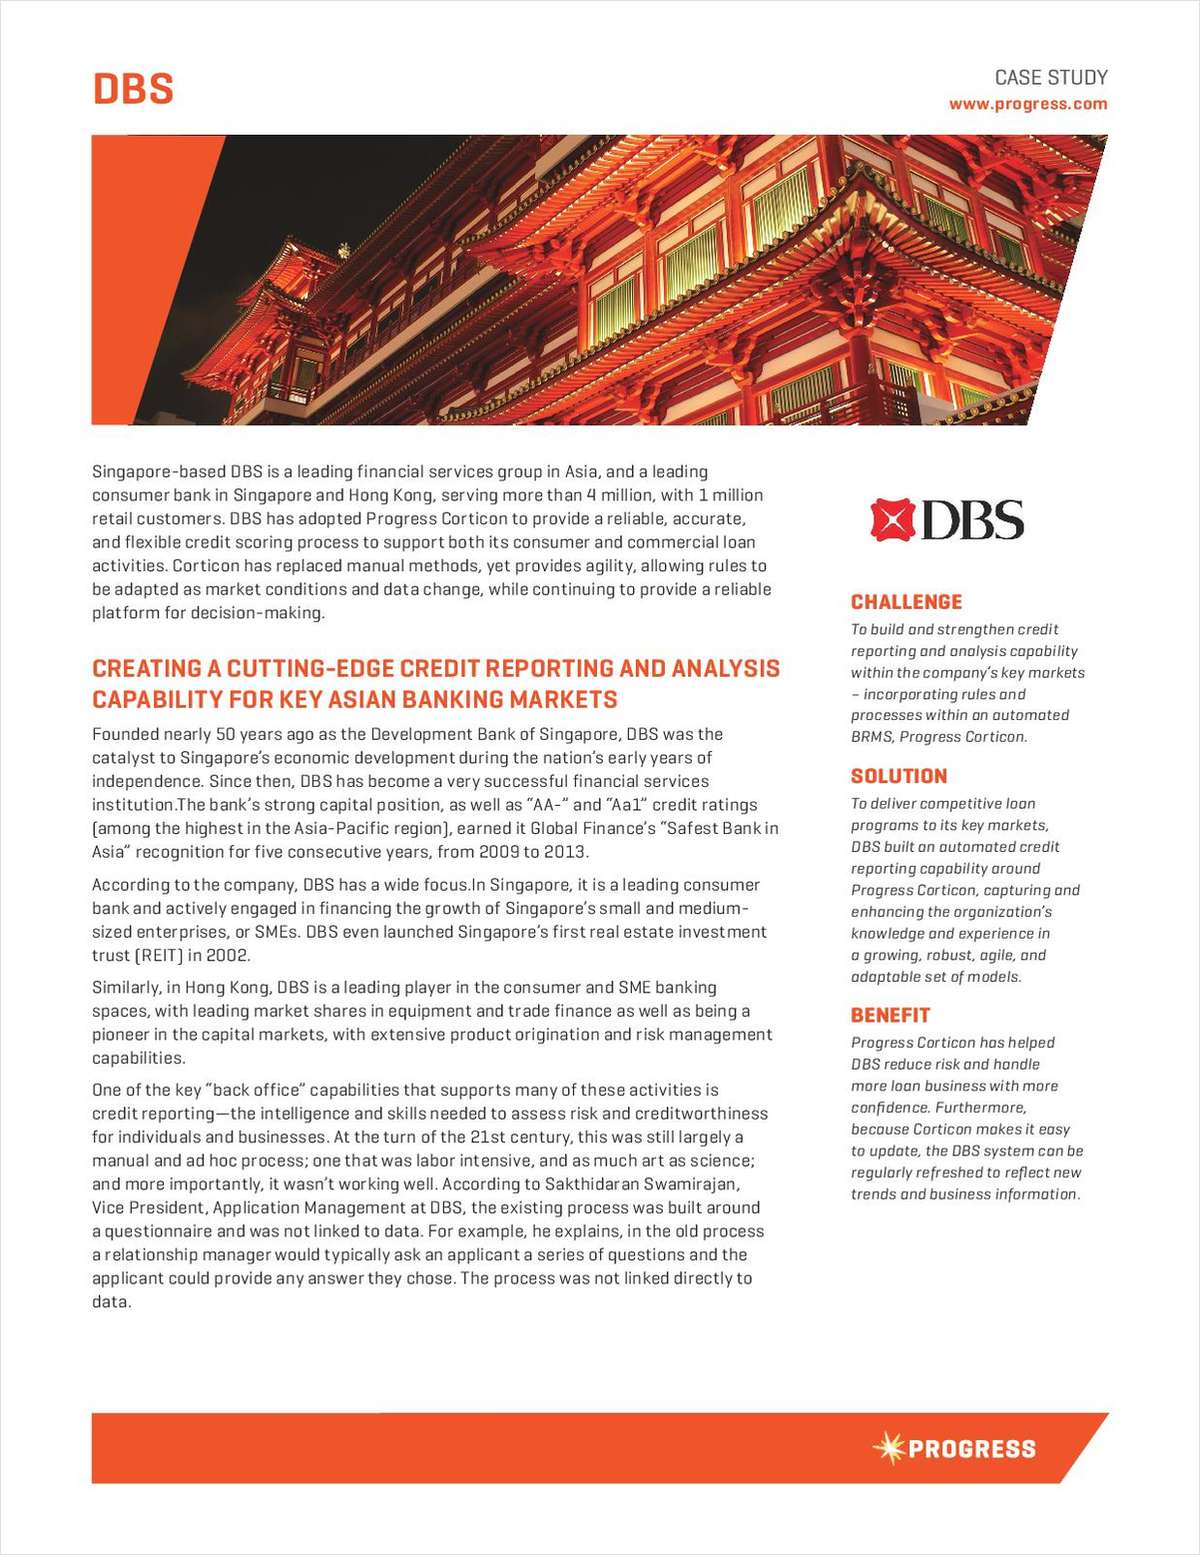 Creating a Cutting-Edge Reporting and Analyst Capability for the Banking Market